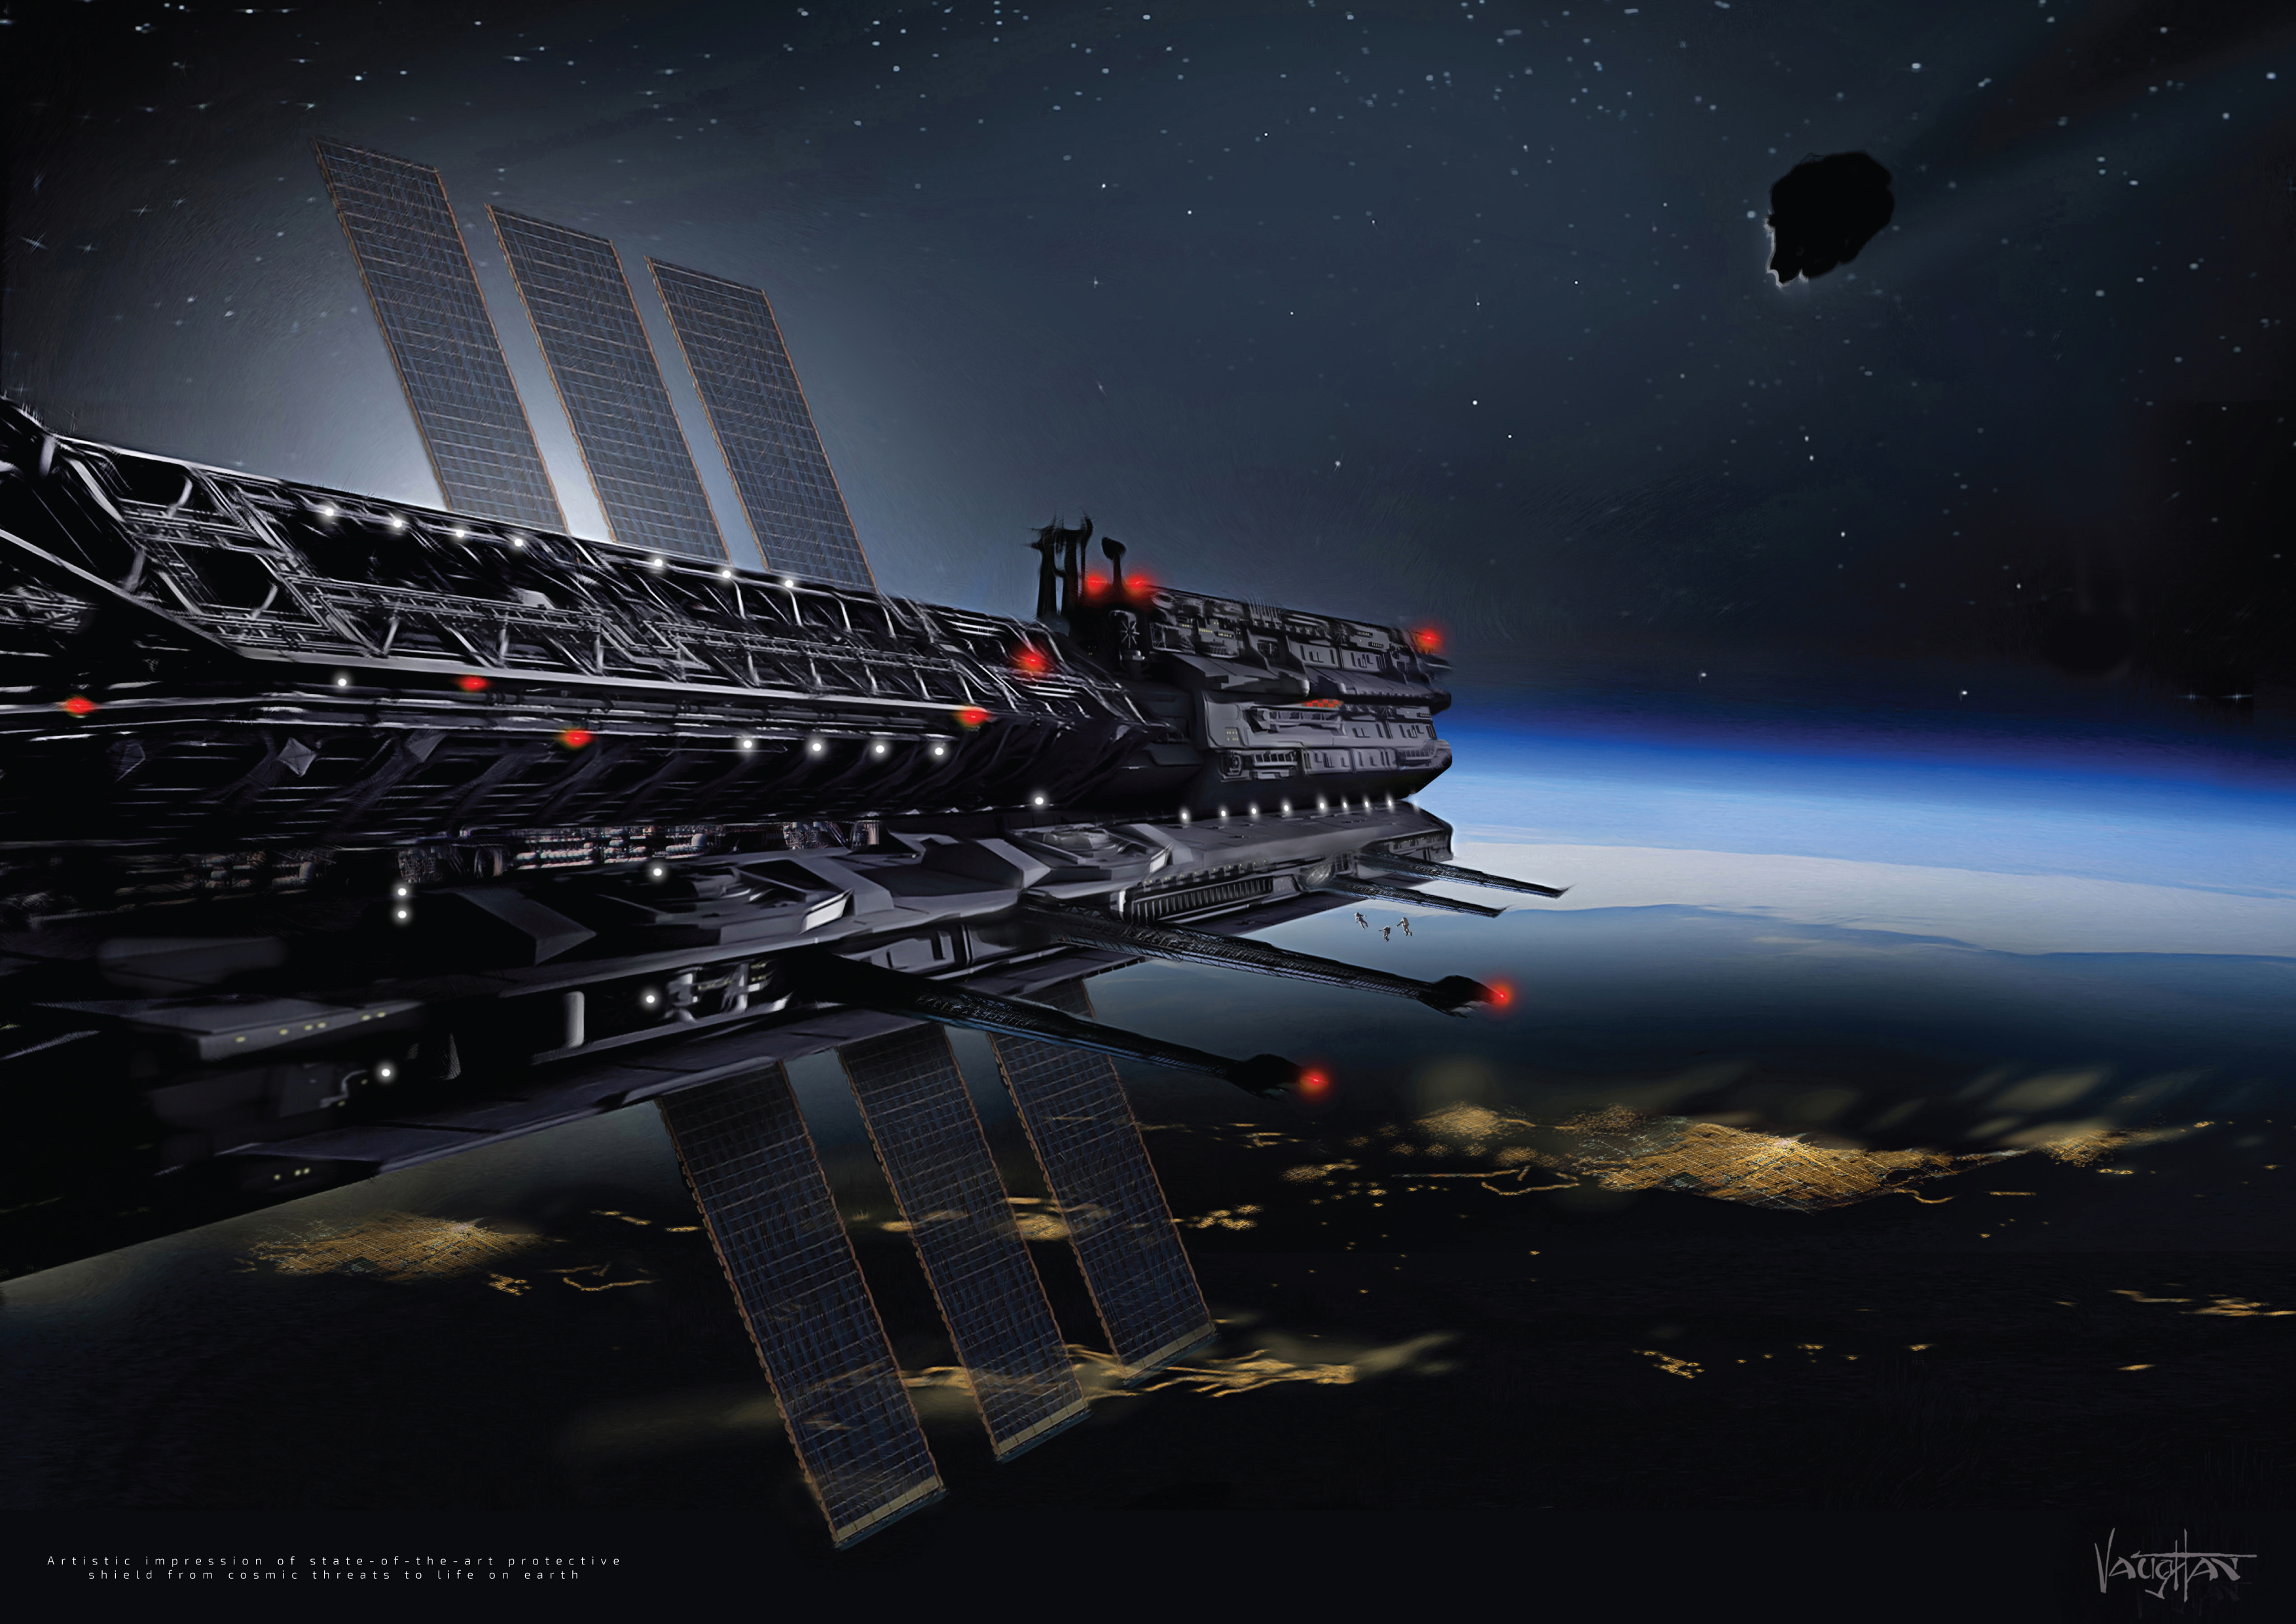 Asgardia space station credit to james vaughan